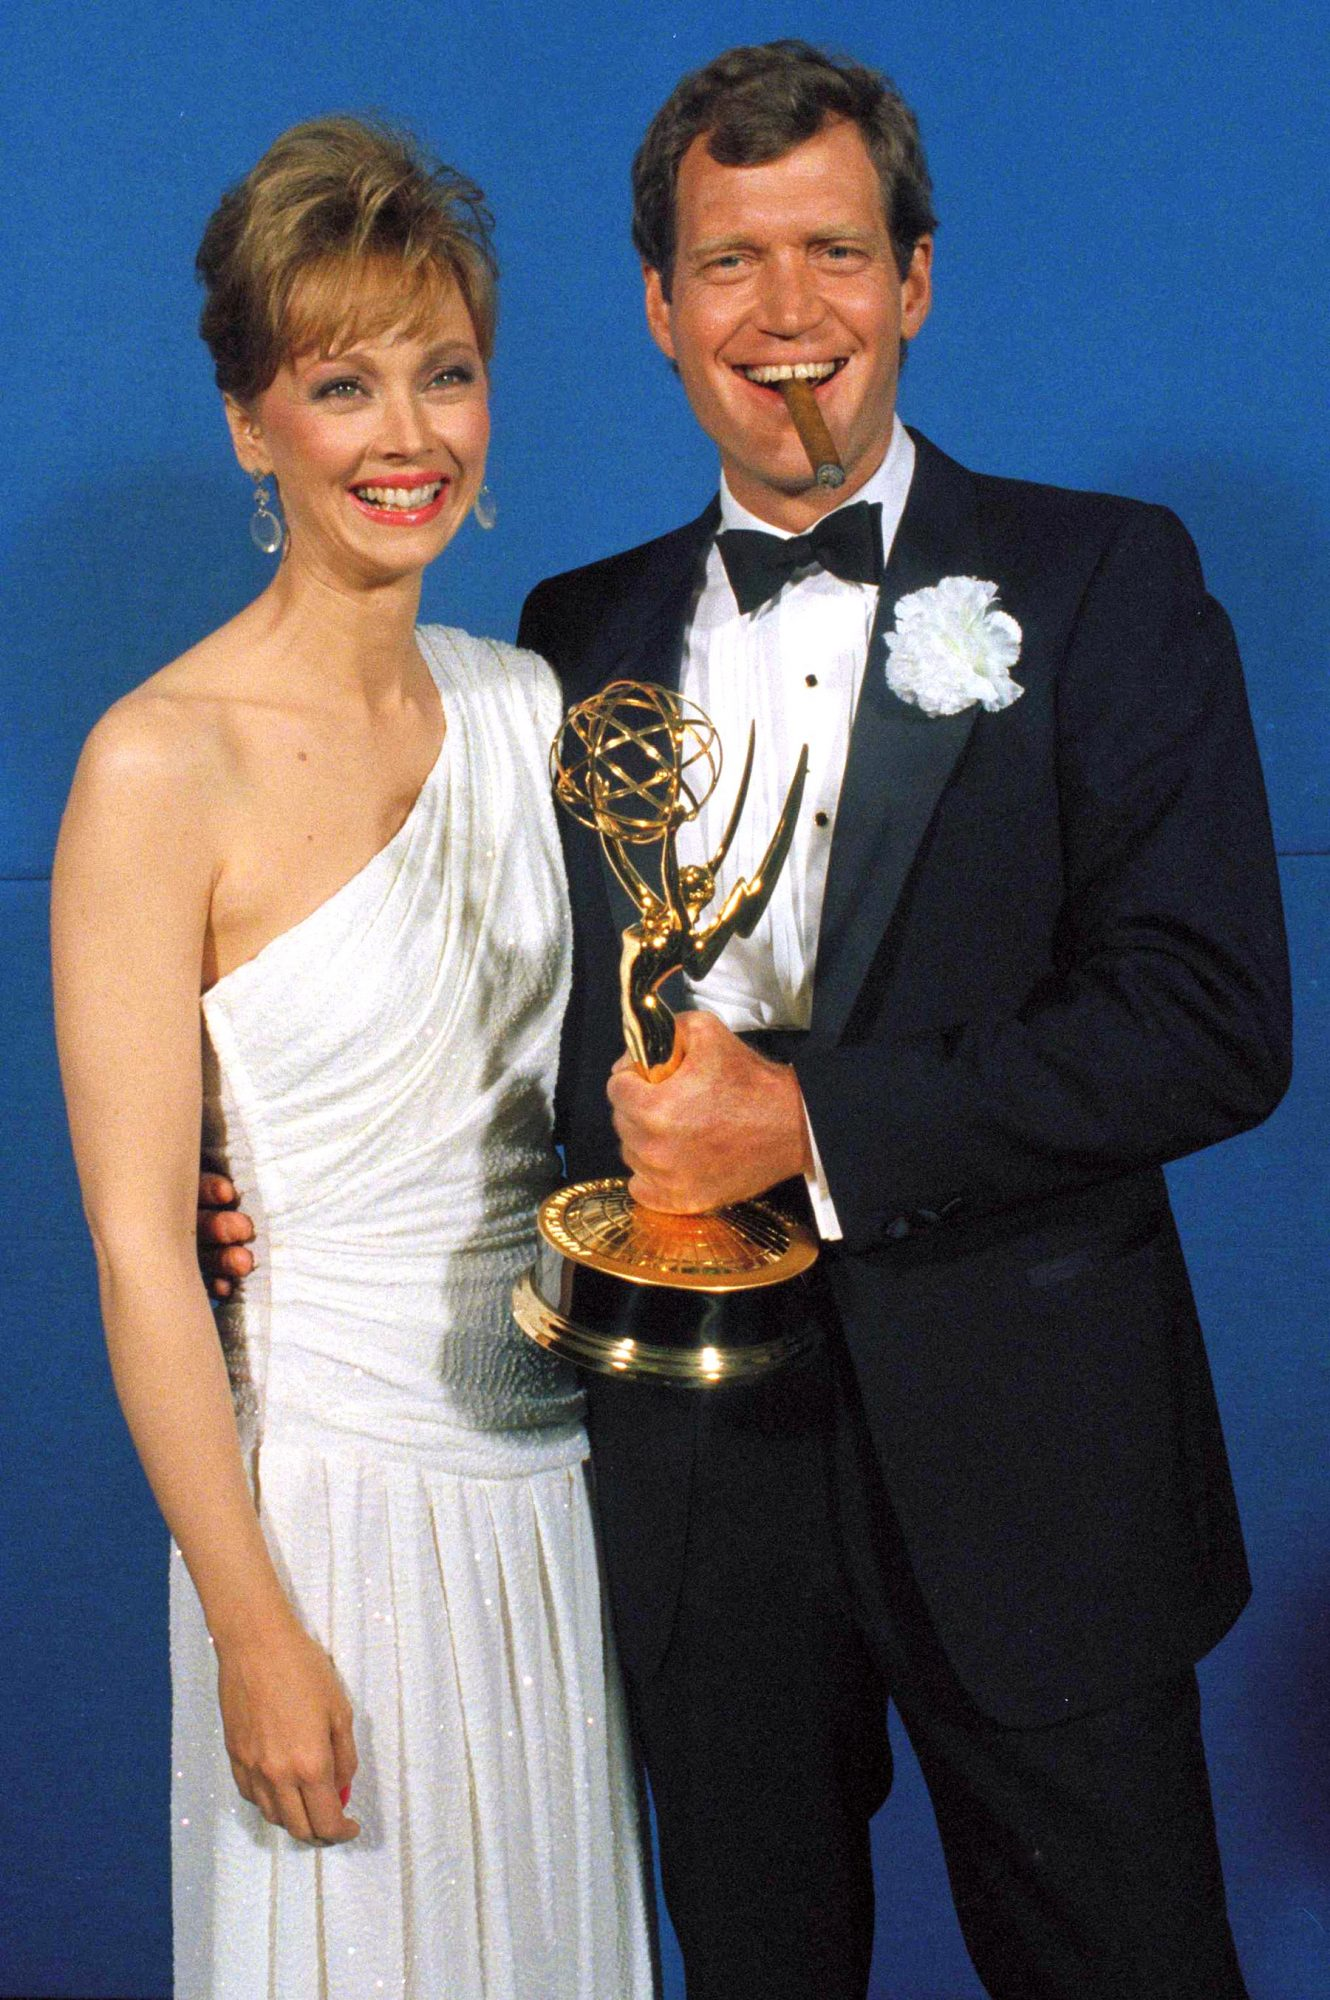 Shelley Long and David Letterman Holding YTrophy, New York, USA